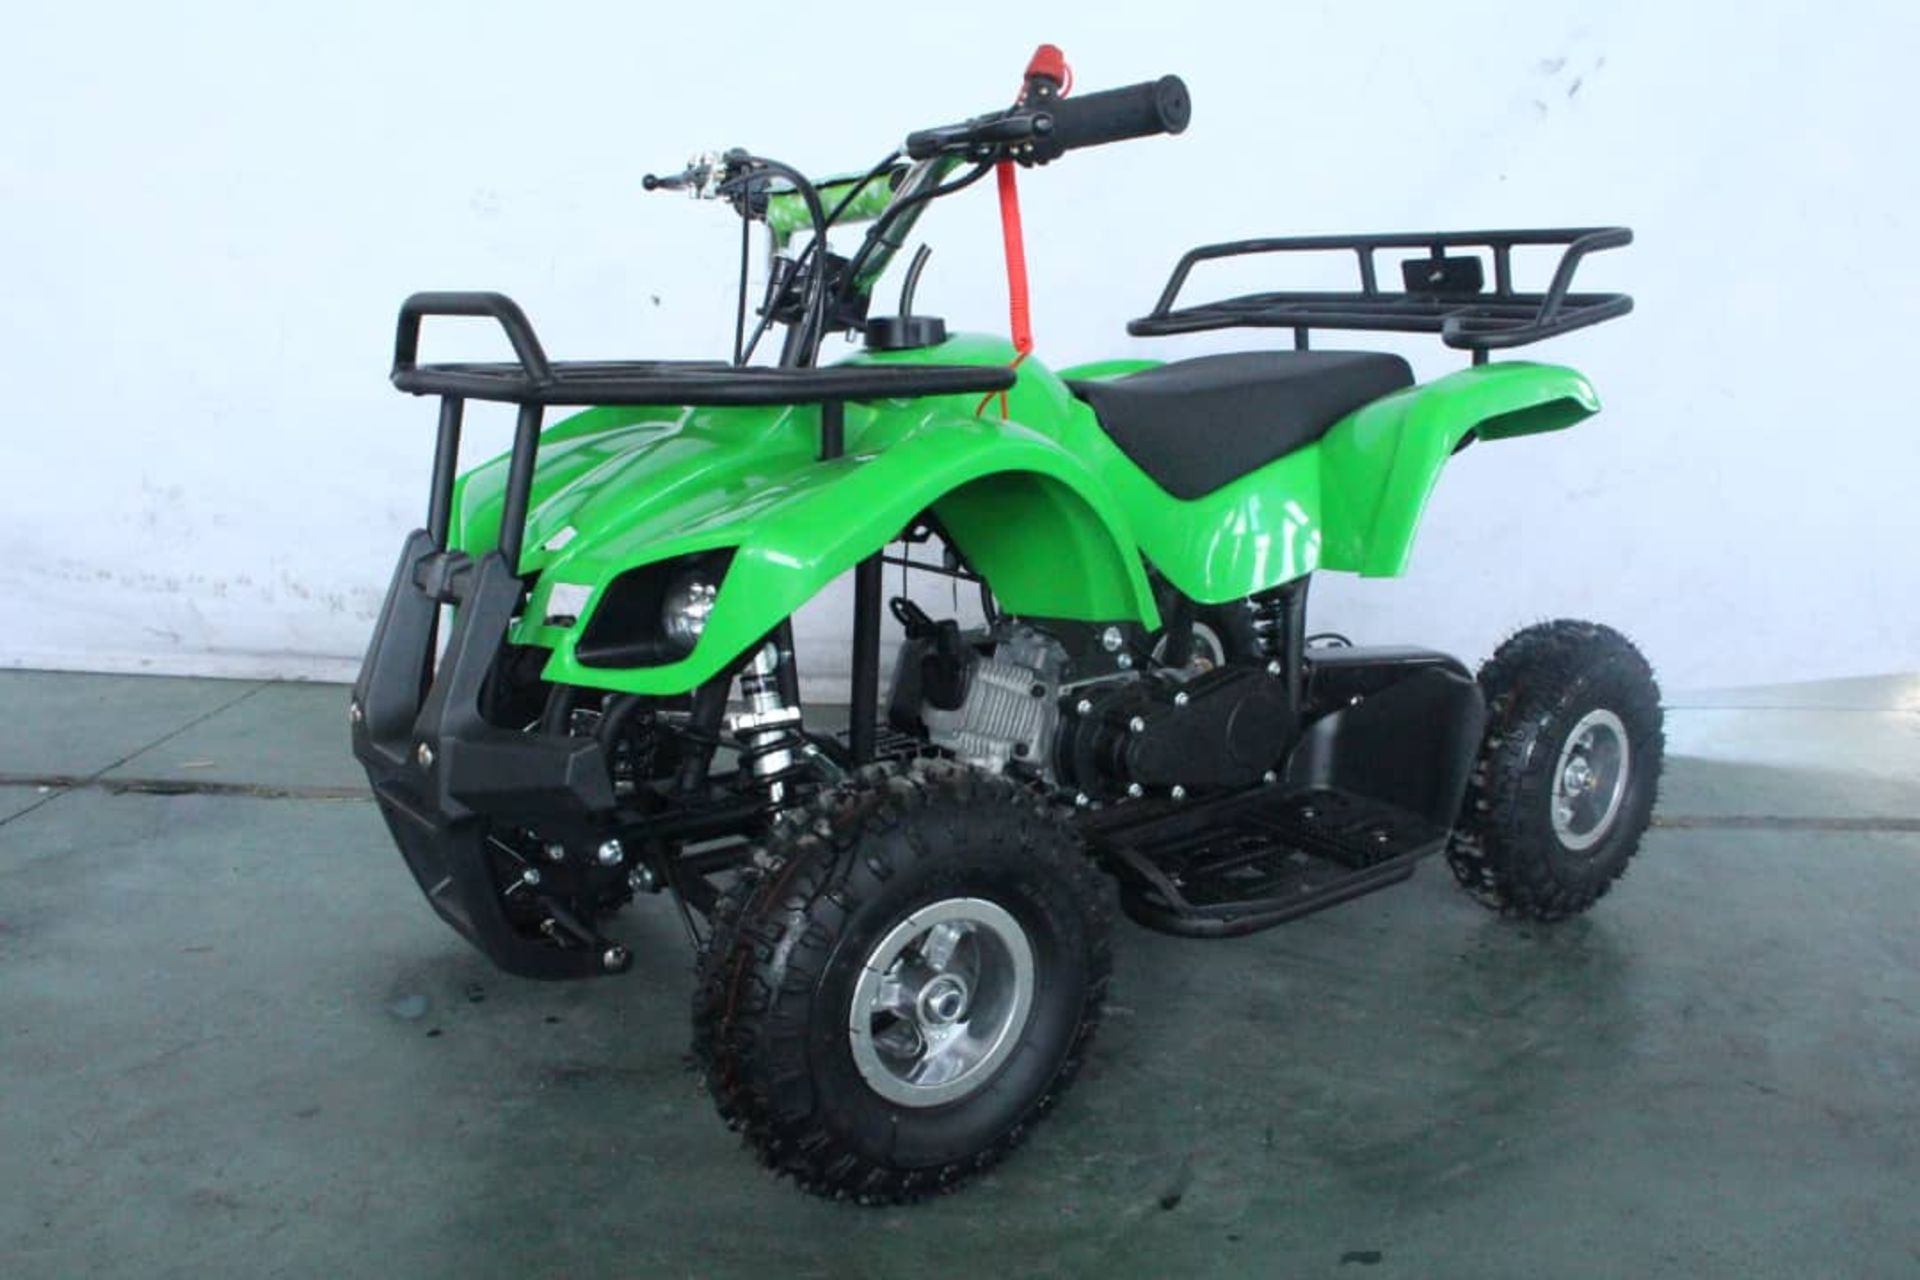 + VAT Brand New 50cc Mini Quad Bike FRM - Colours May Vary - Picture May Vary From Actual Item - Image 9 of 9